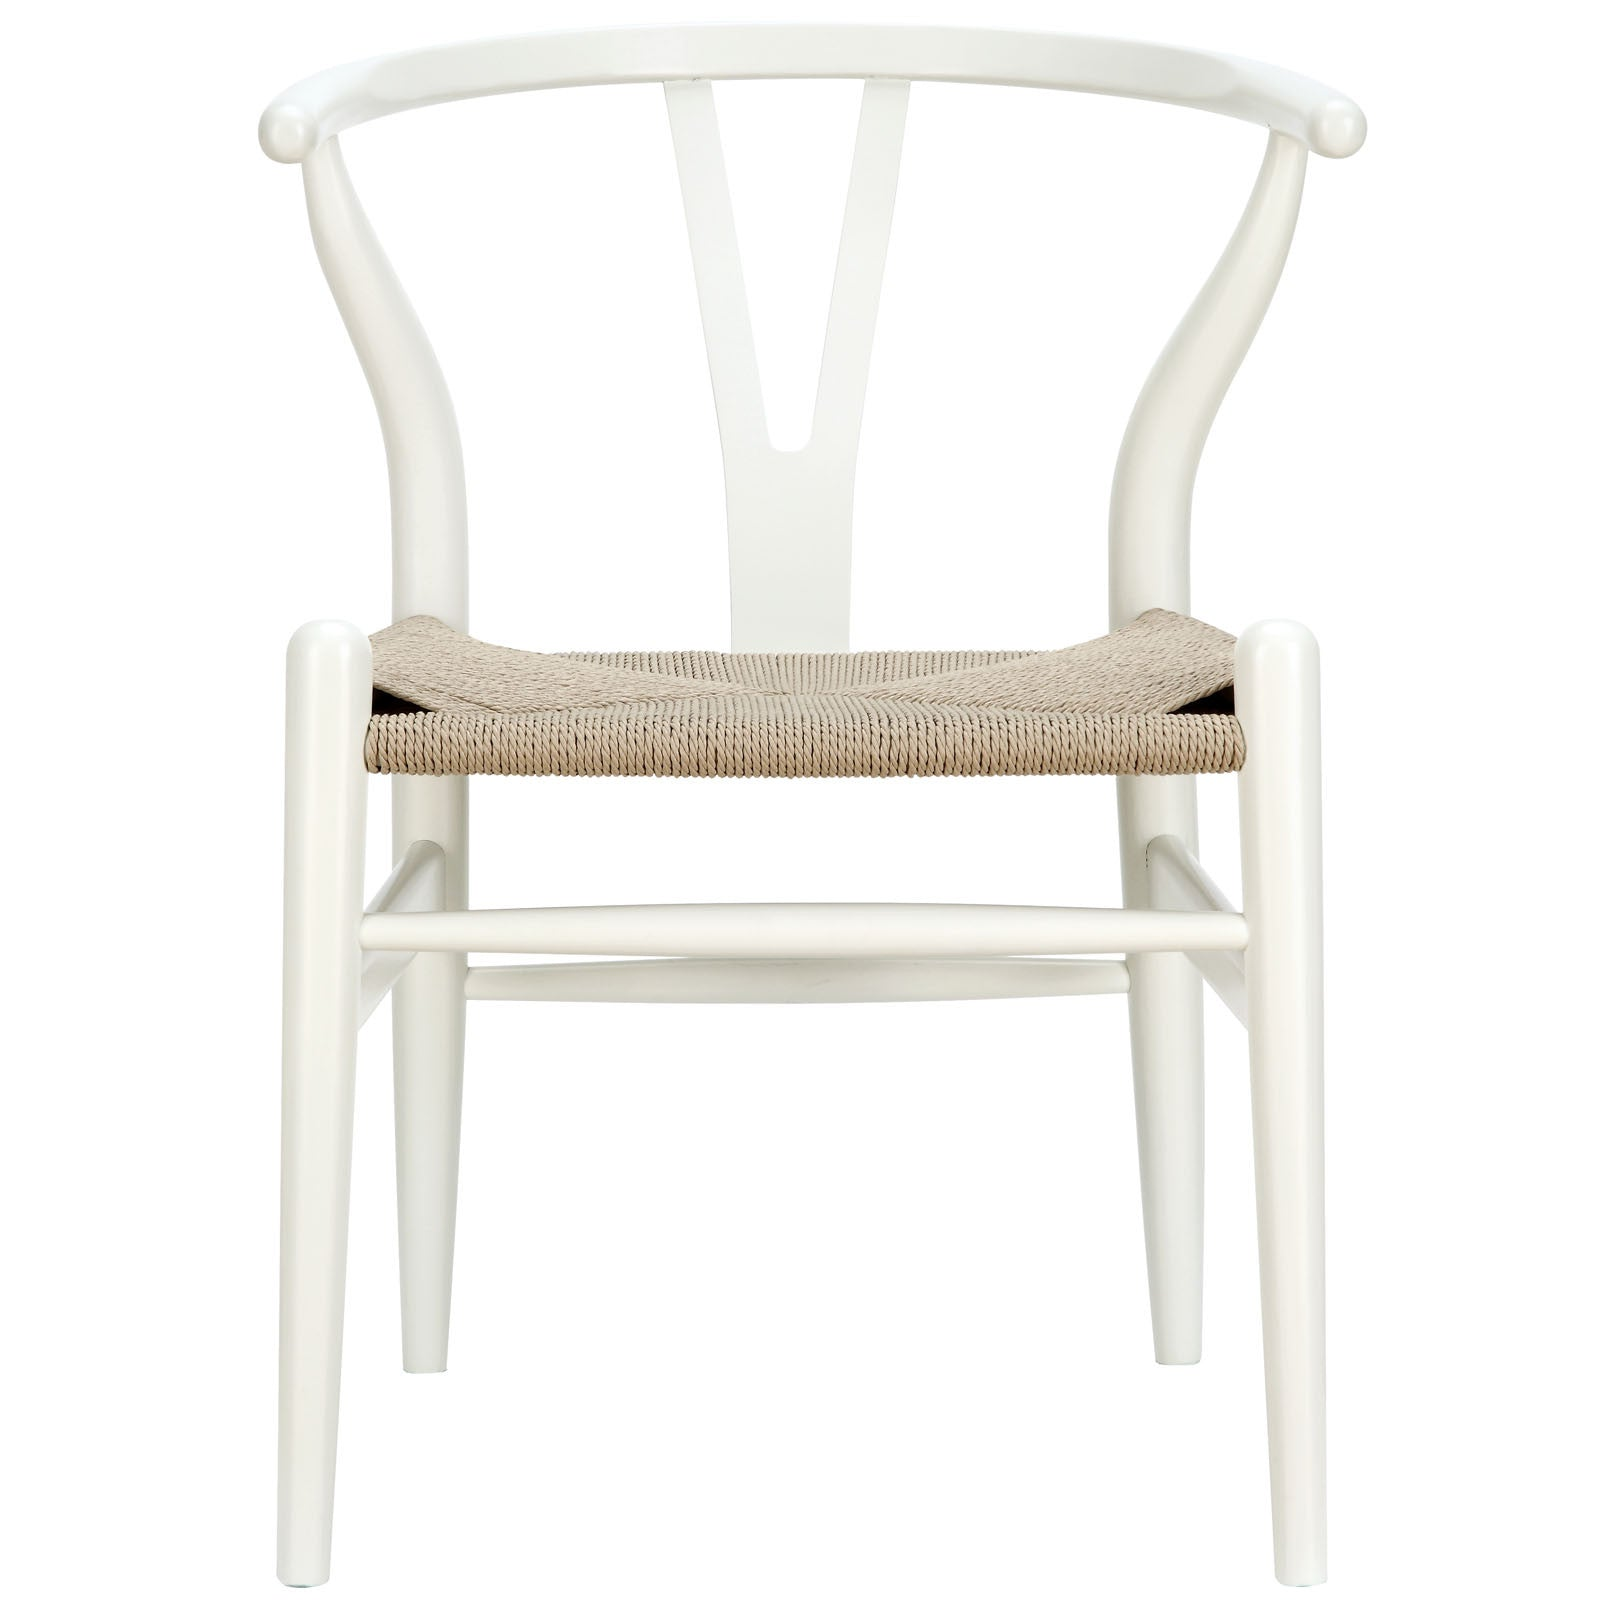 Amelot Wood Armchair White FROY